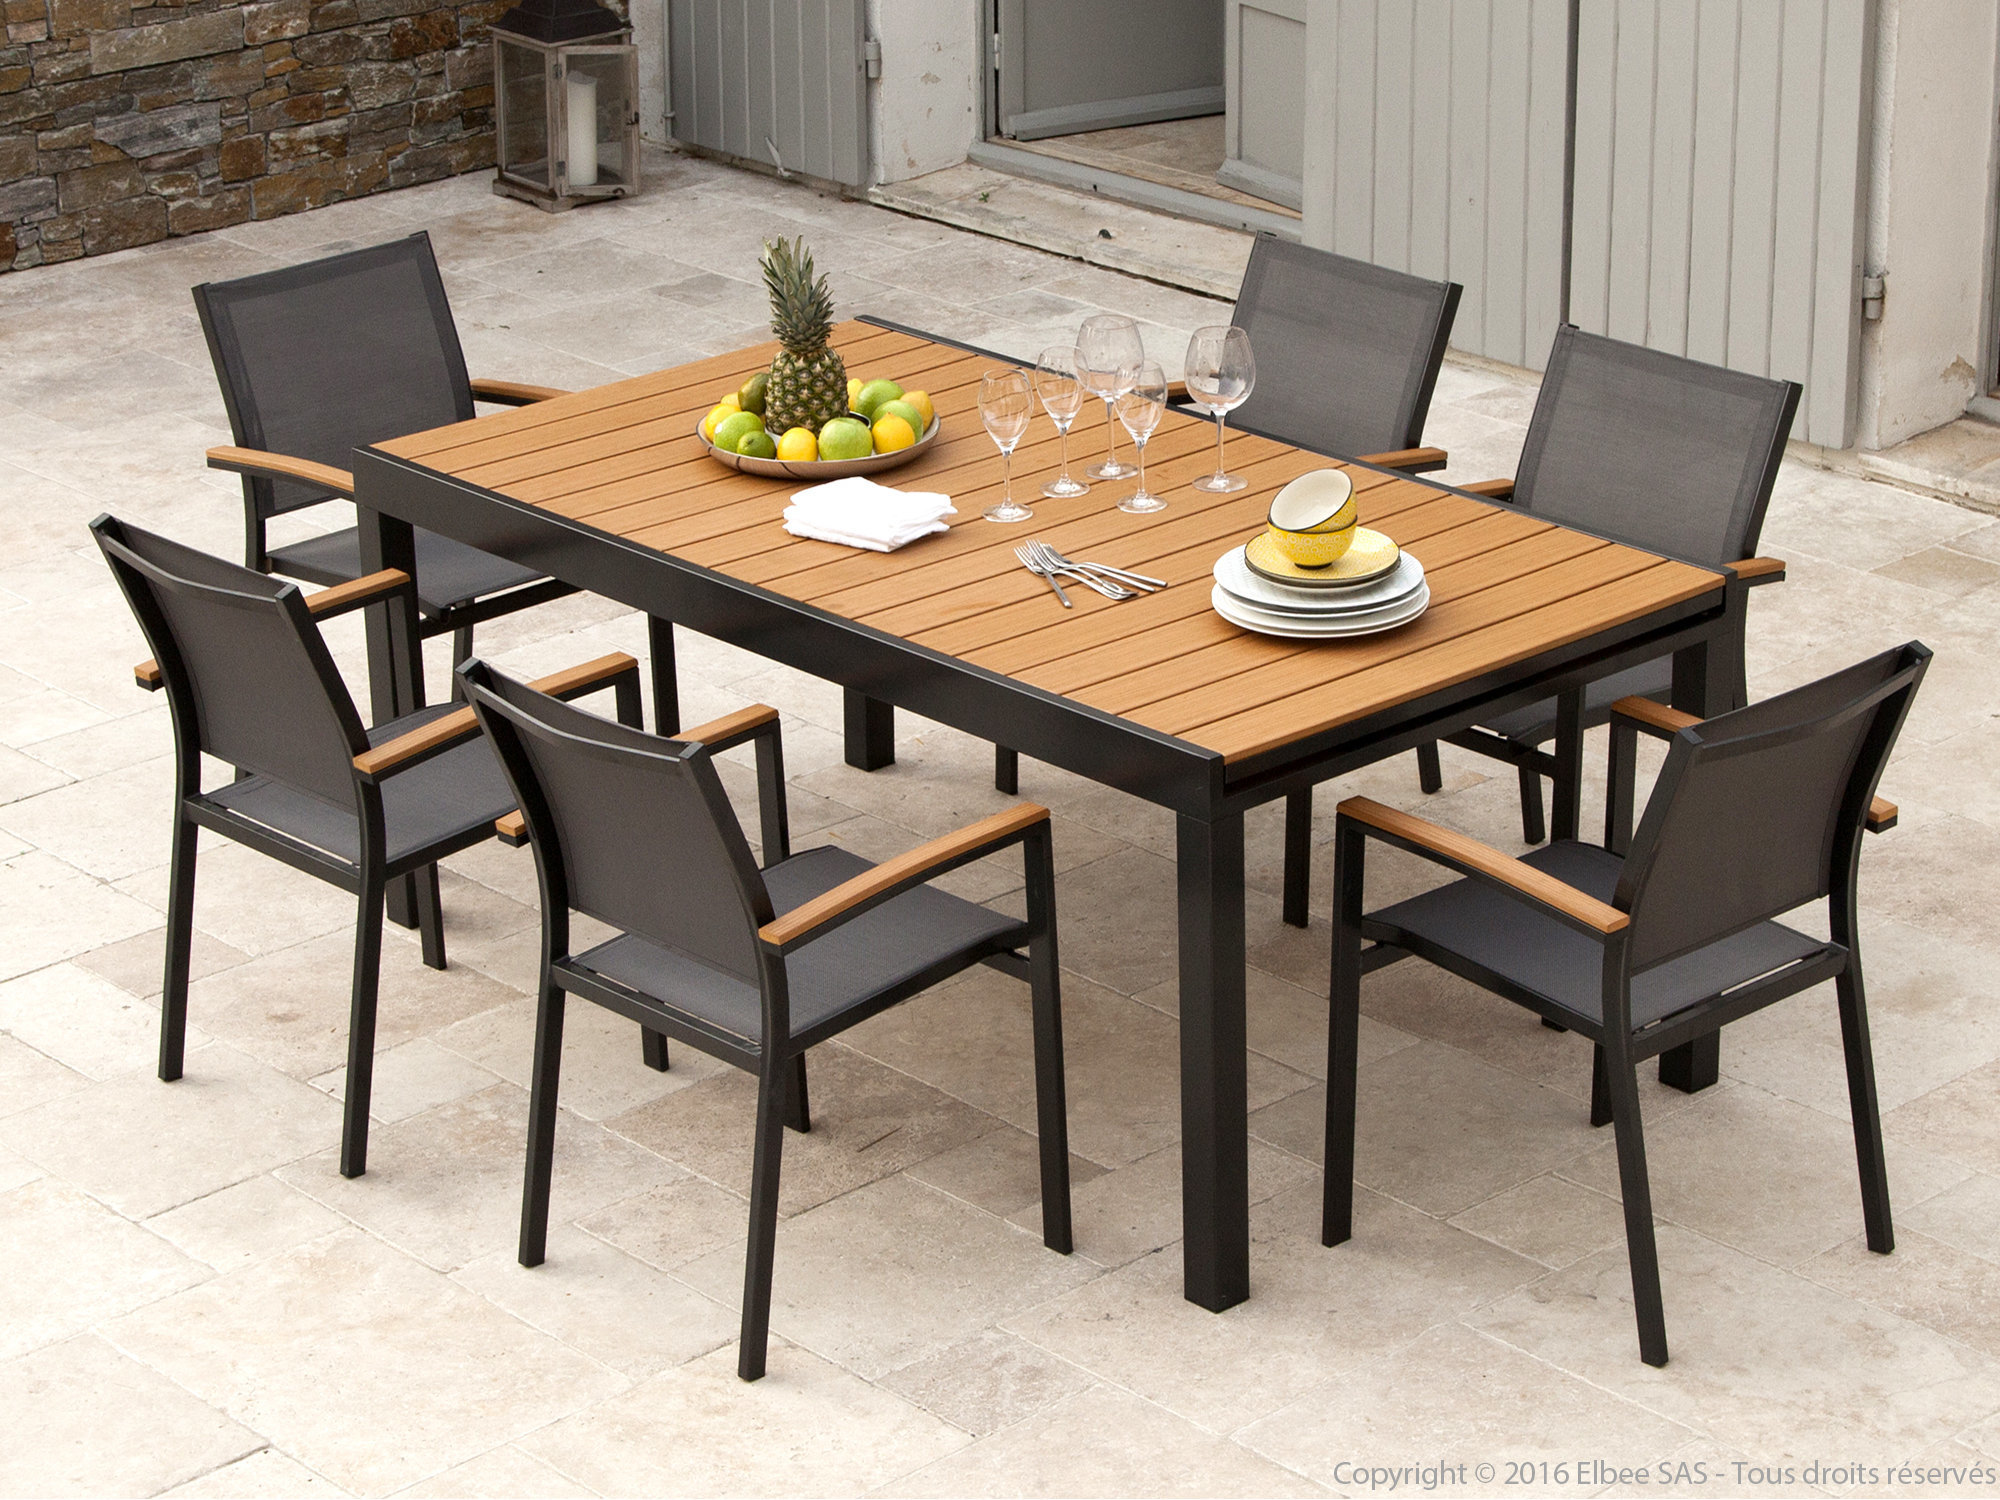 Emejing Table De Jardin Extensible Marino Images - House ...